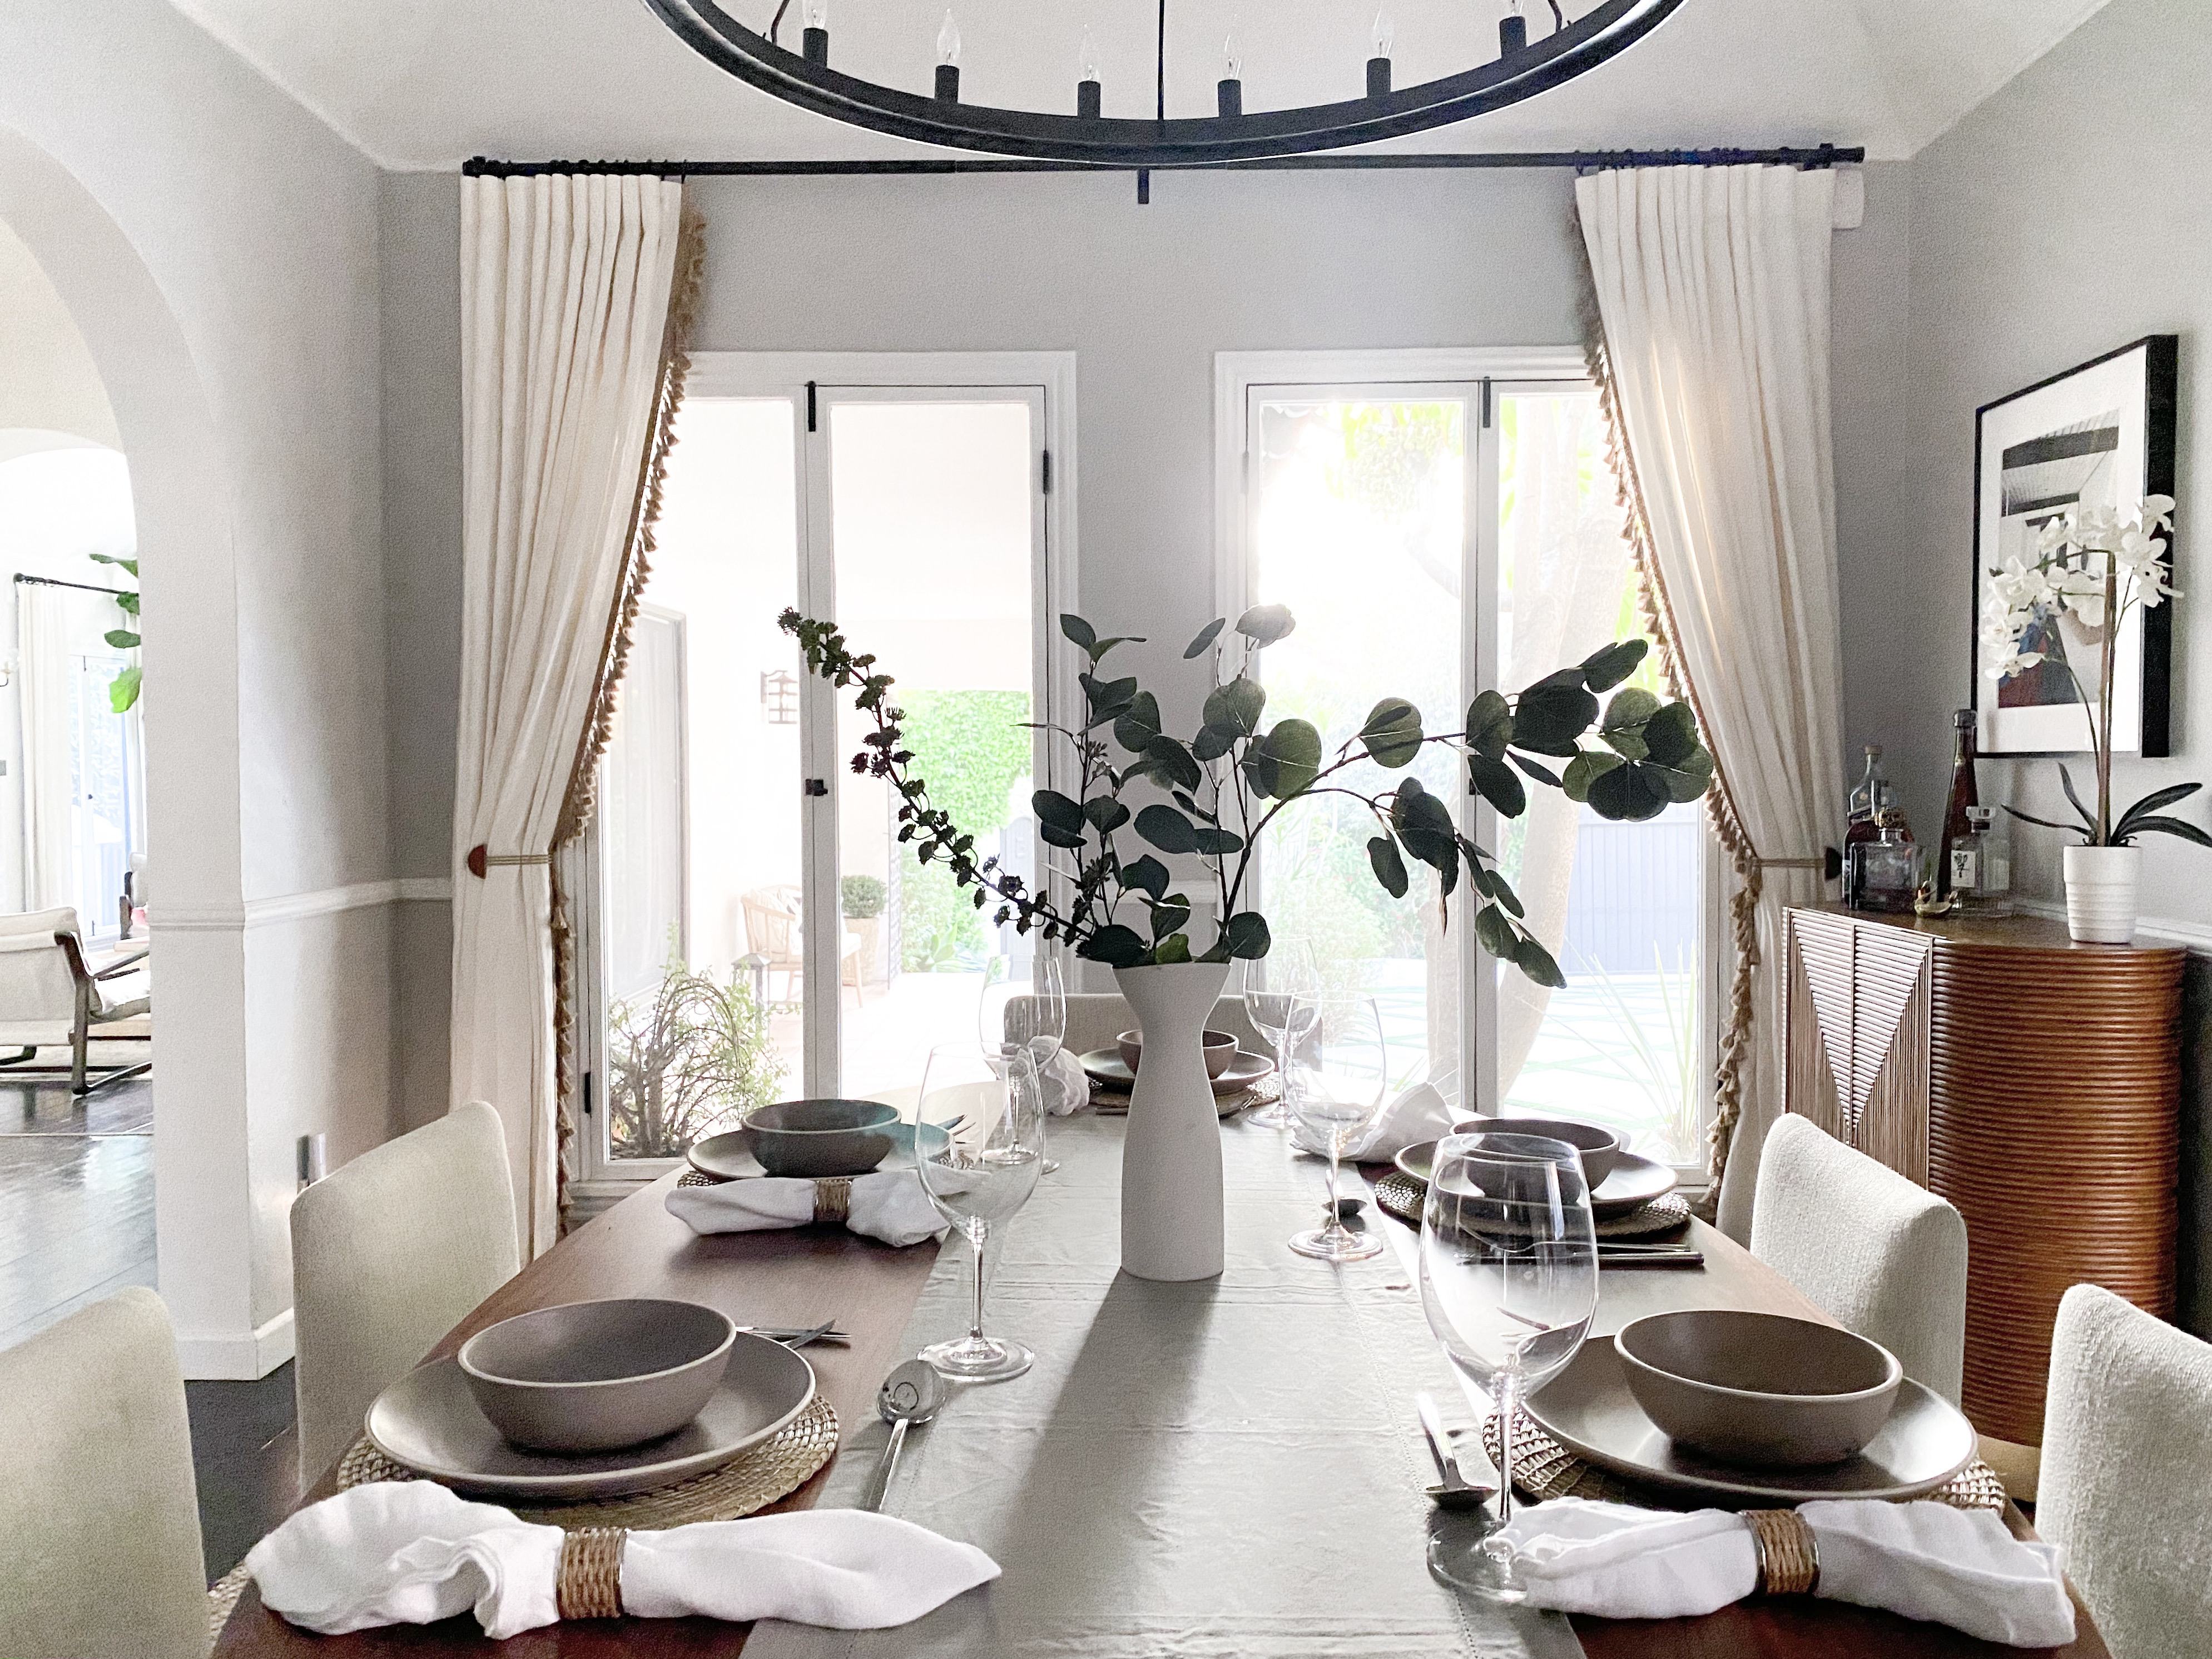 Dining room decor tricks: a table set with plates, cloth napkins, a table runner & faux flowers.